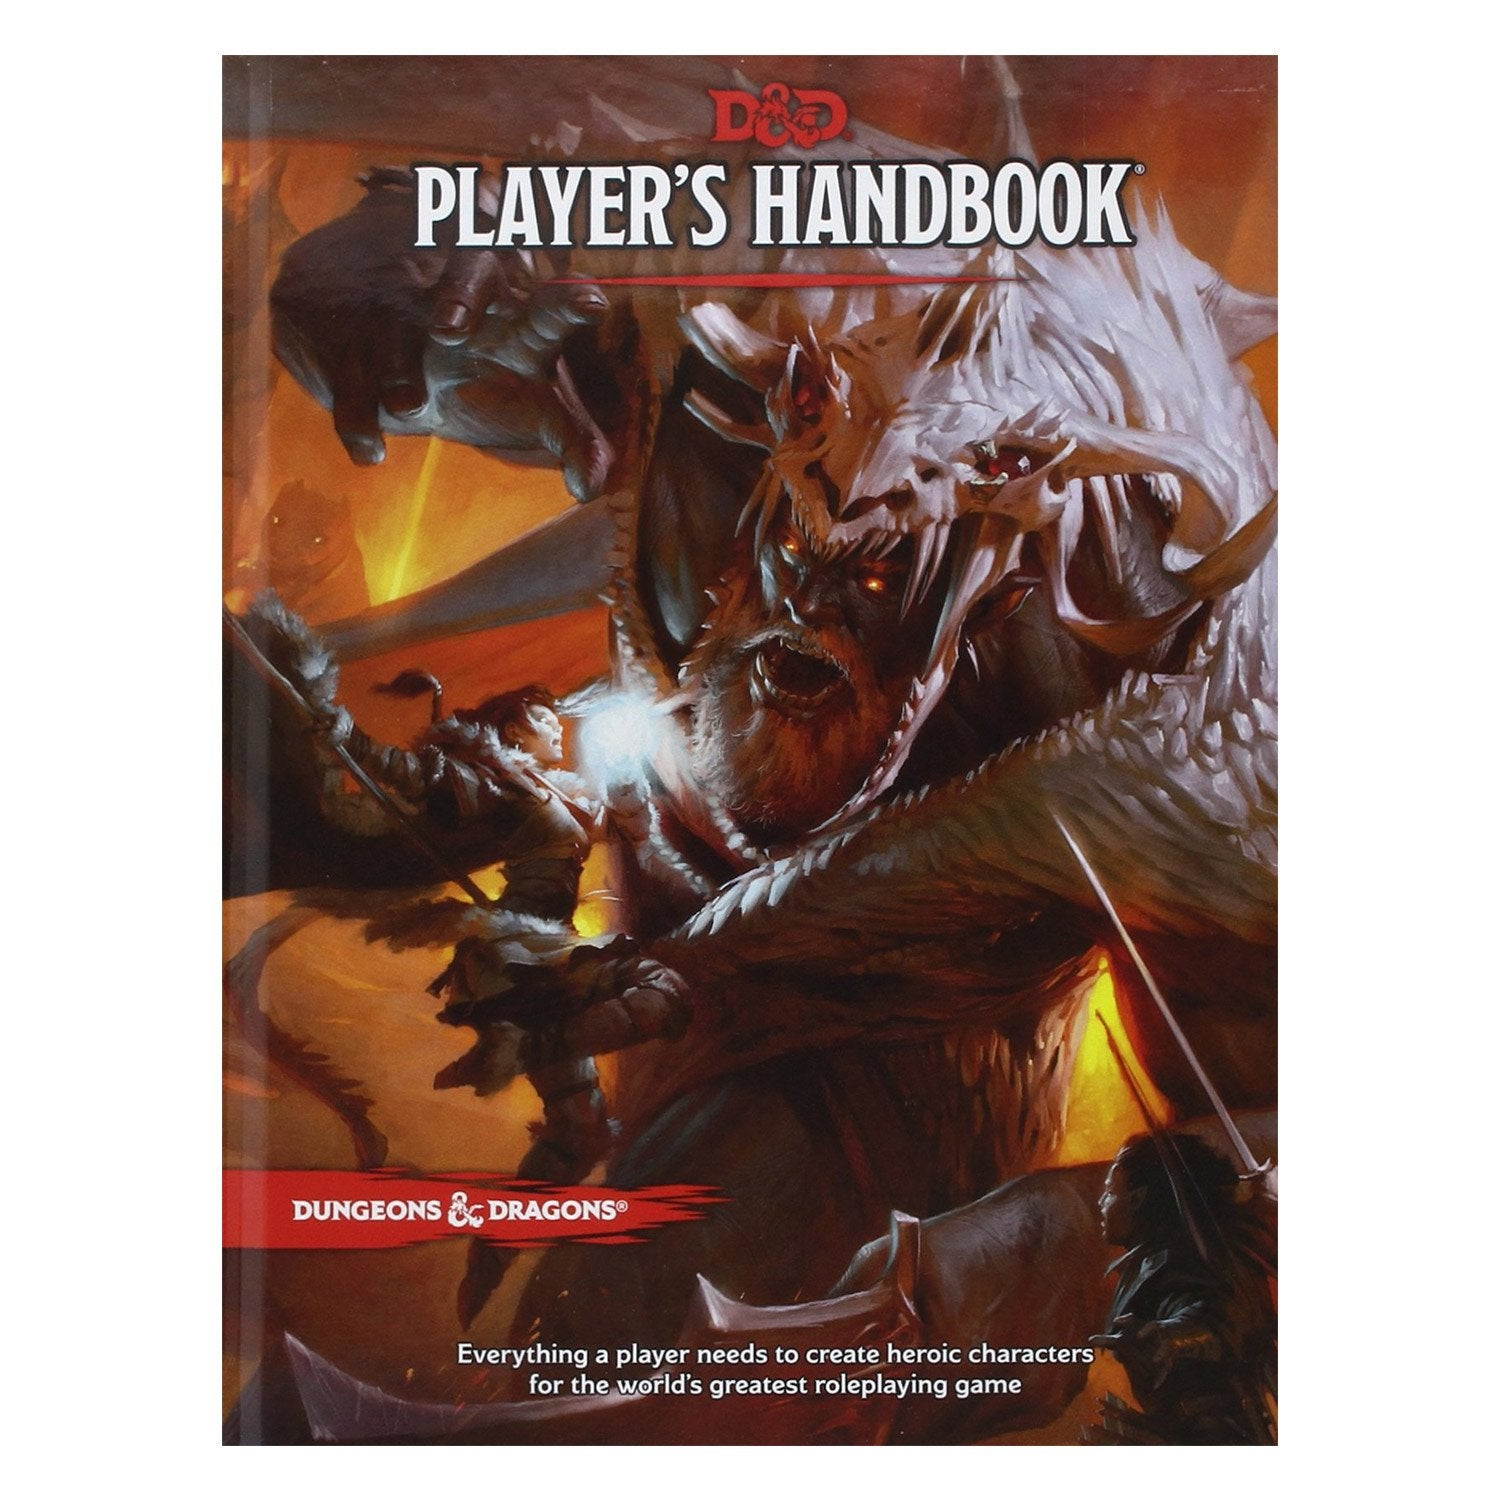 Dungeons & Dragons Player's Handbook - Imaginary Adventures